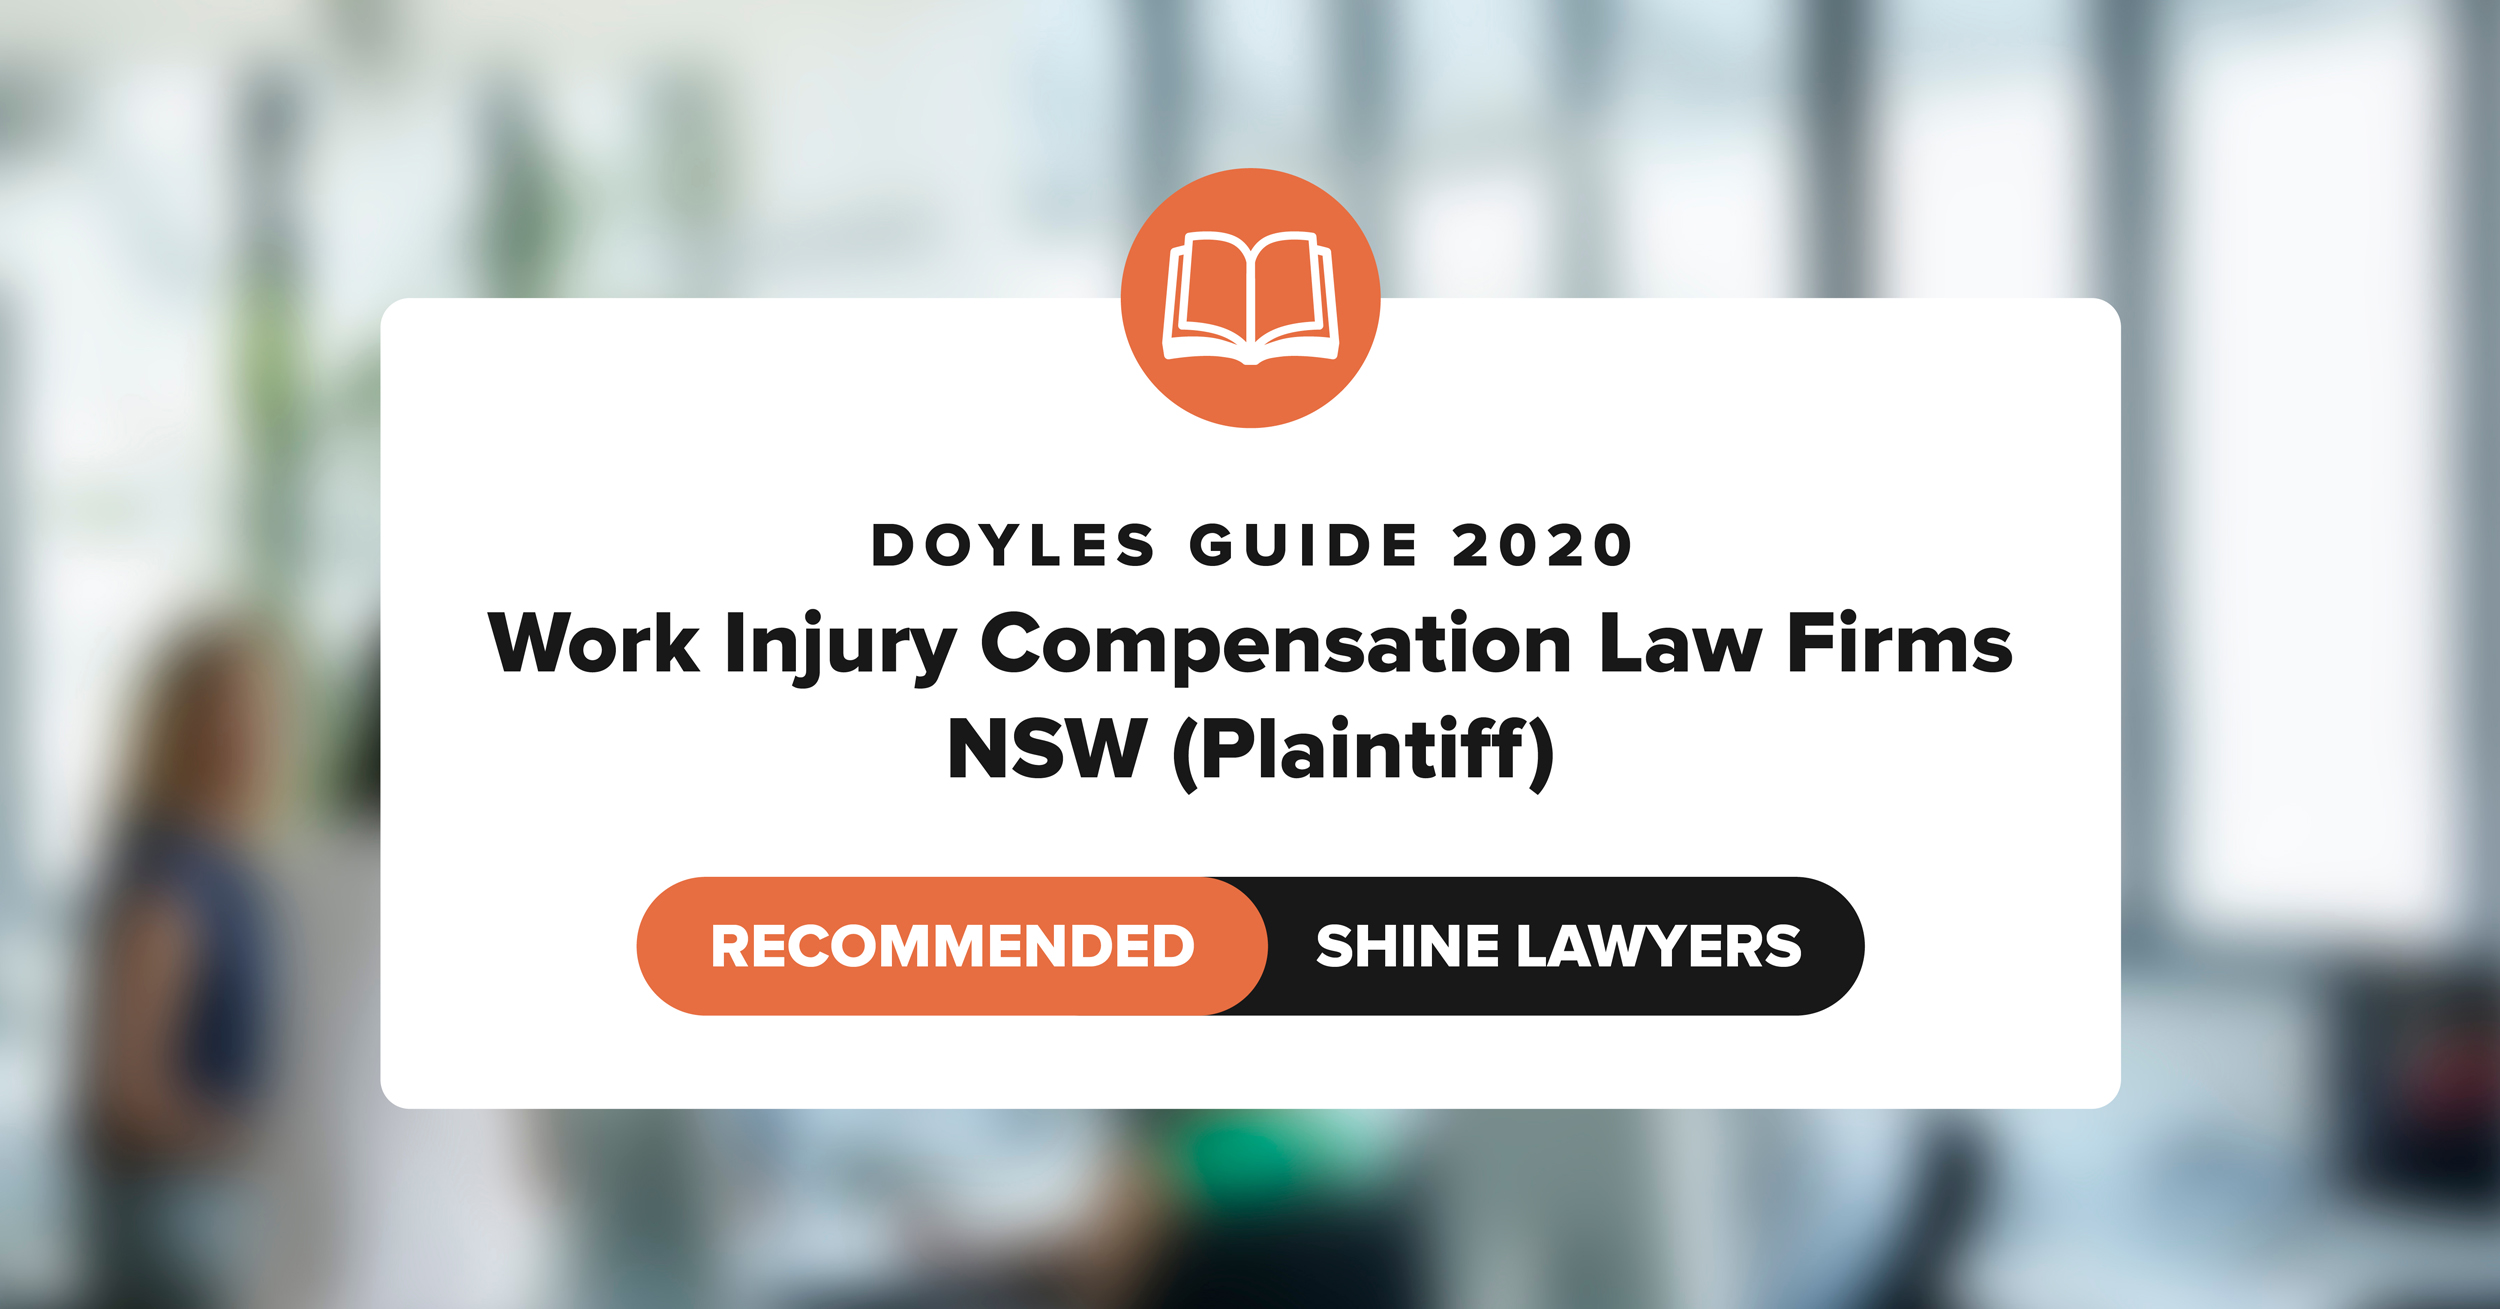 Doyles Guide 2020 Work Injury Compensation Law Firms NSW